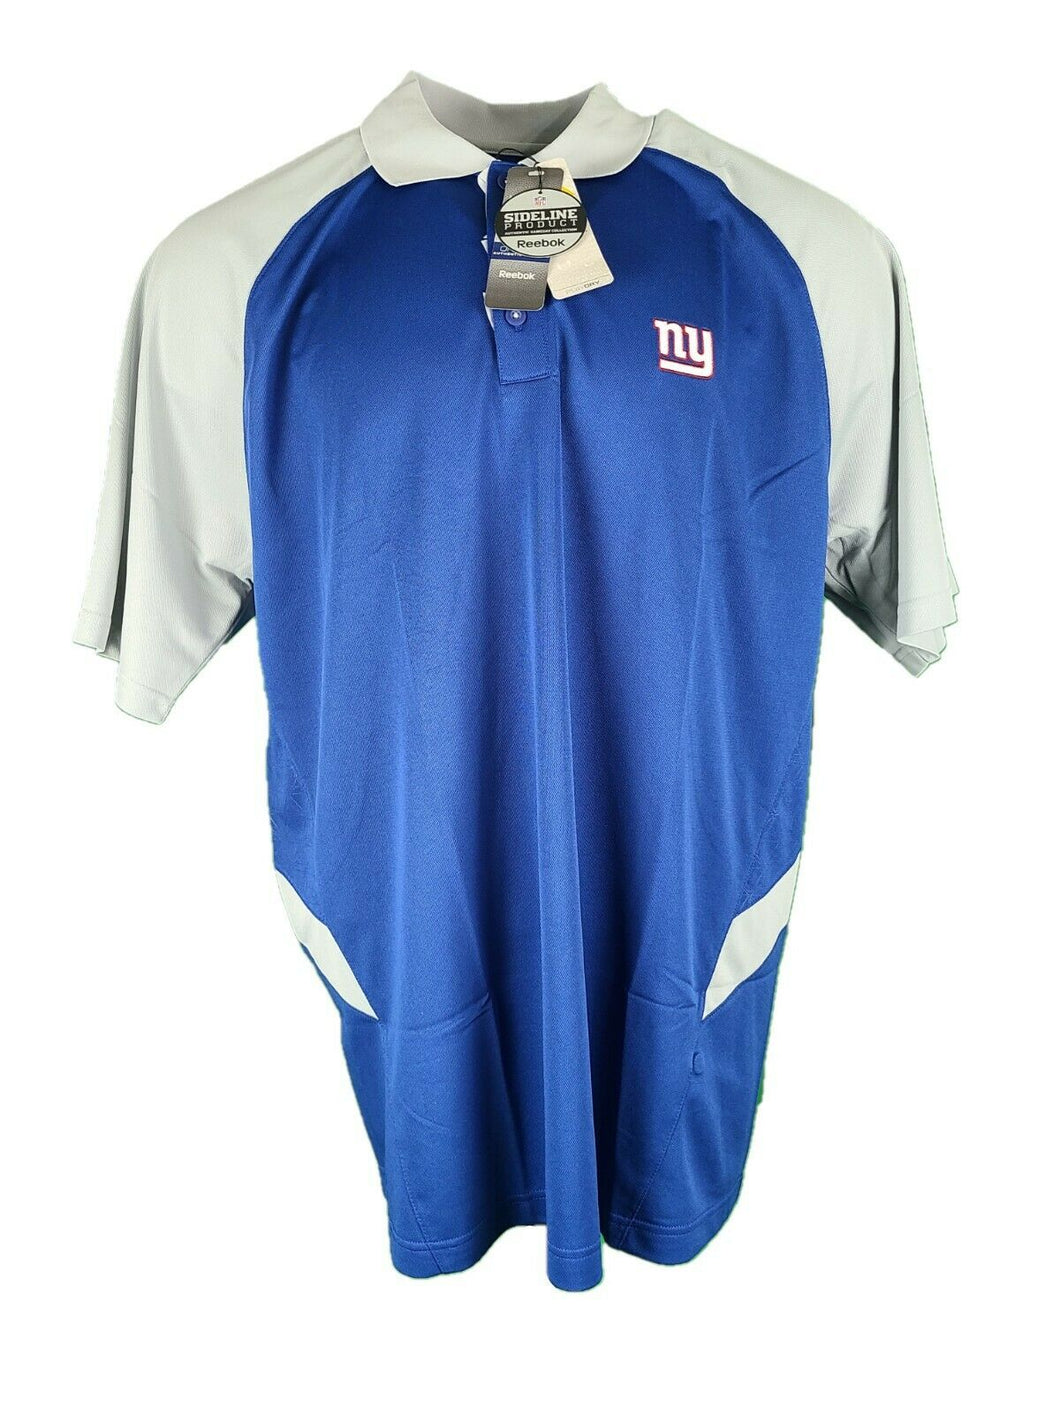 New Authentic Reebok NFL New York Giants Football Shirt Gray And Blue With Tags